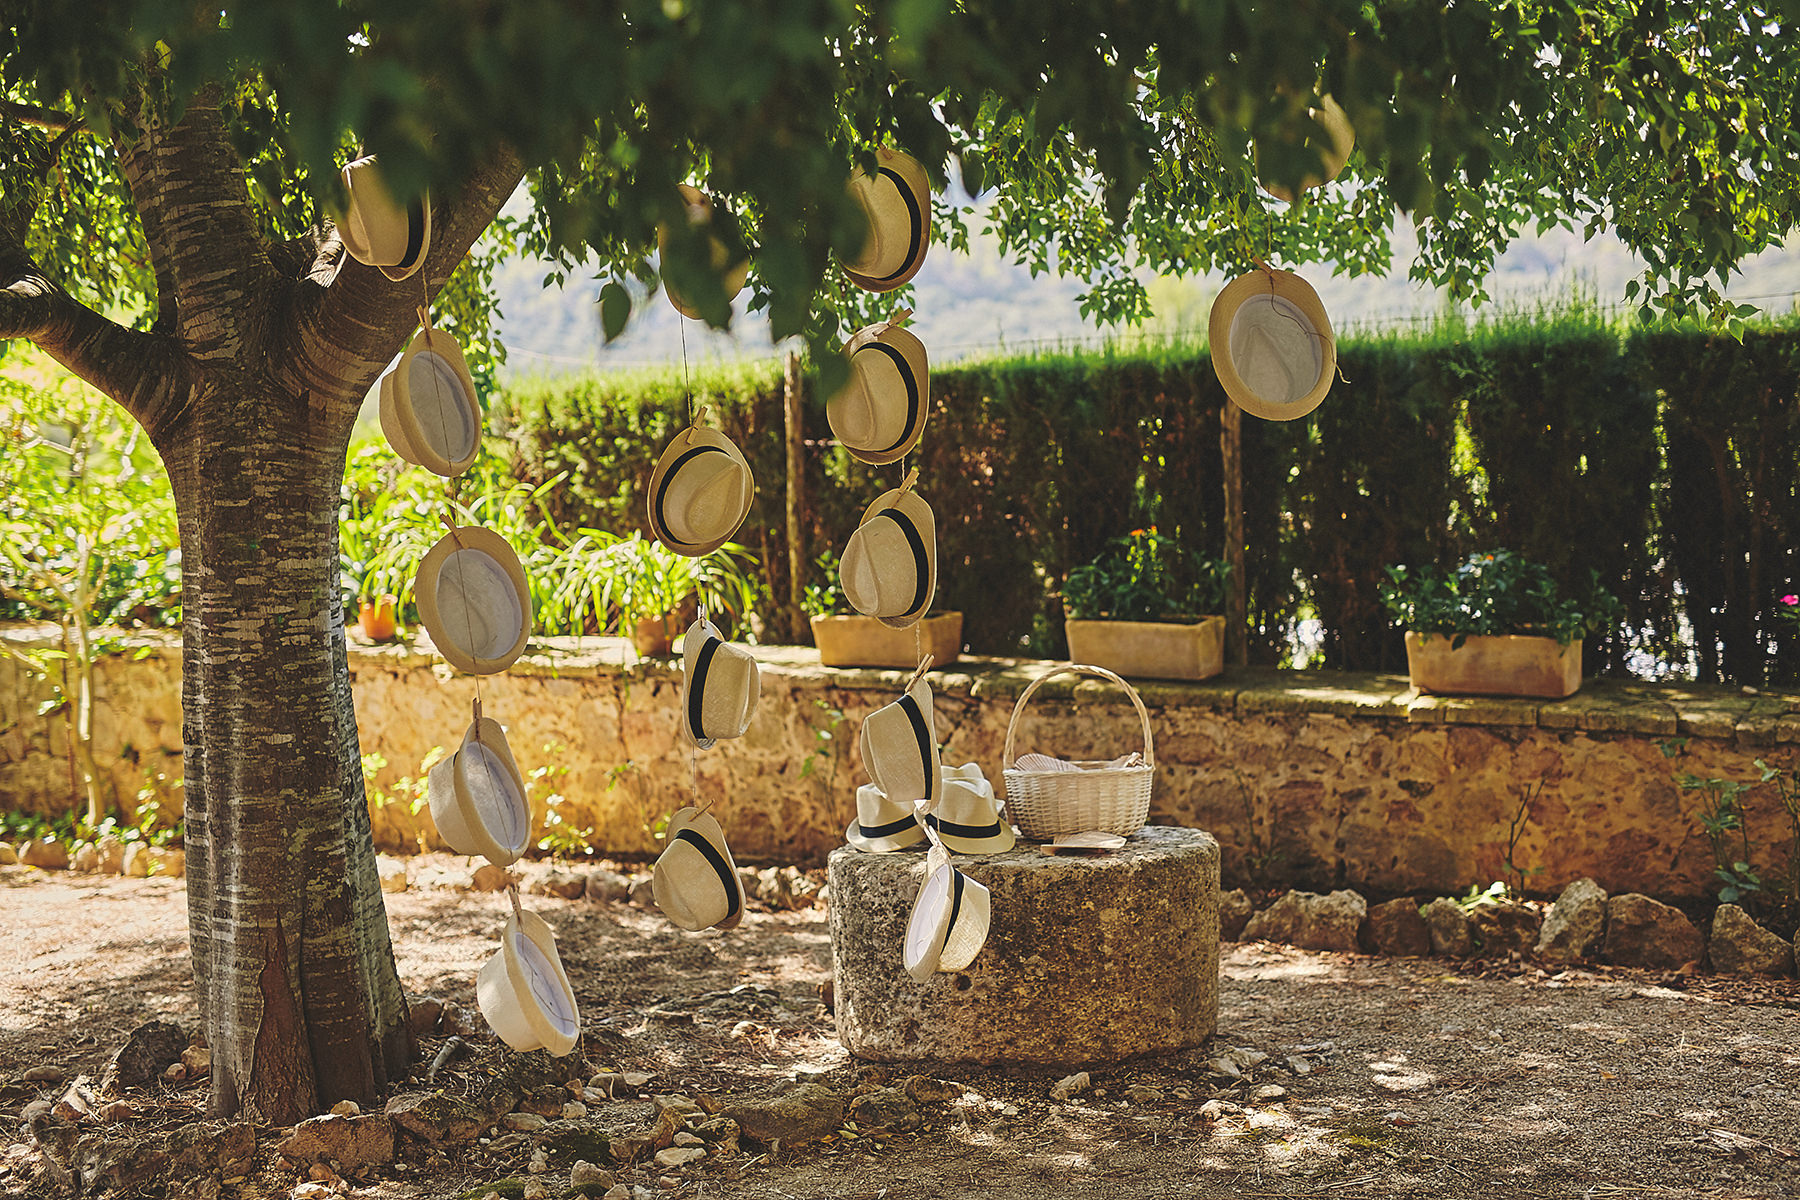 073 - Destination wedding in a magical Mallorca